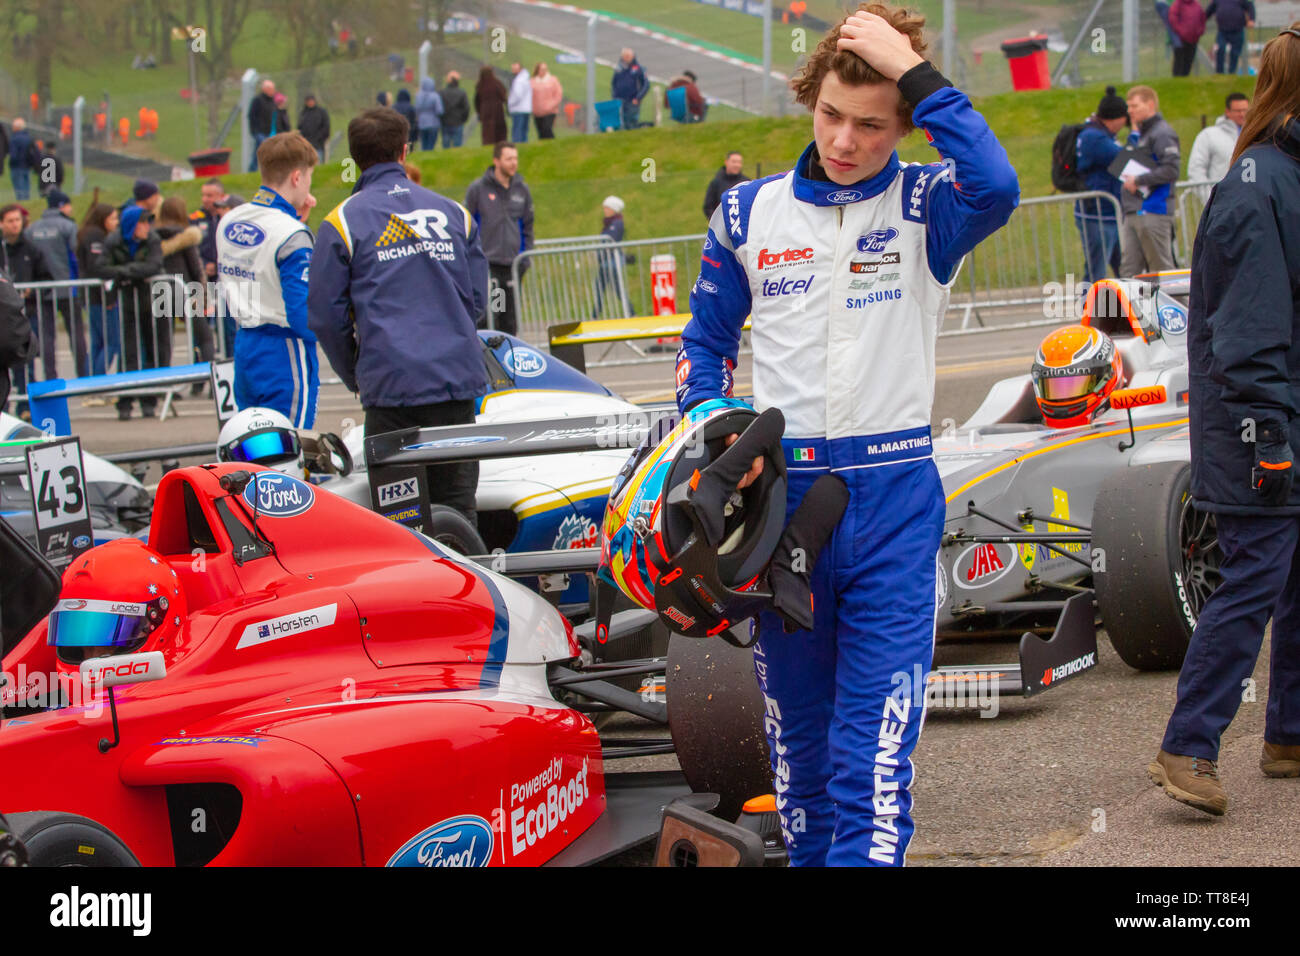 Mariano Martinez, Mexican racing driver. British Formula 4 paddock, after qualifying at Brands Hatch - Stock Image